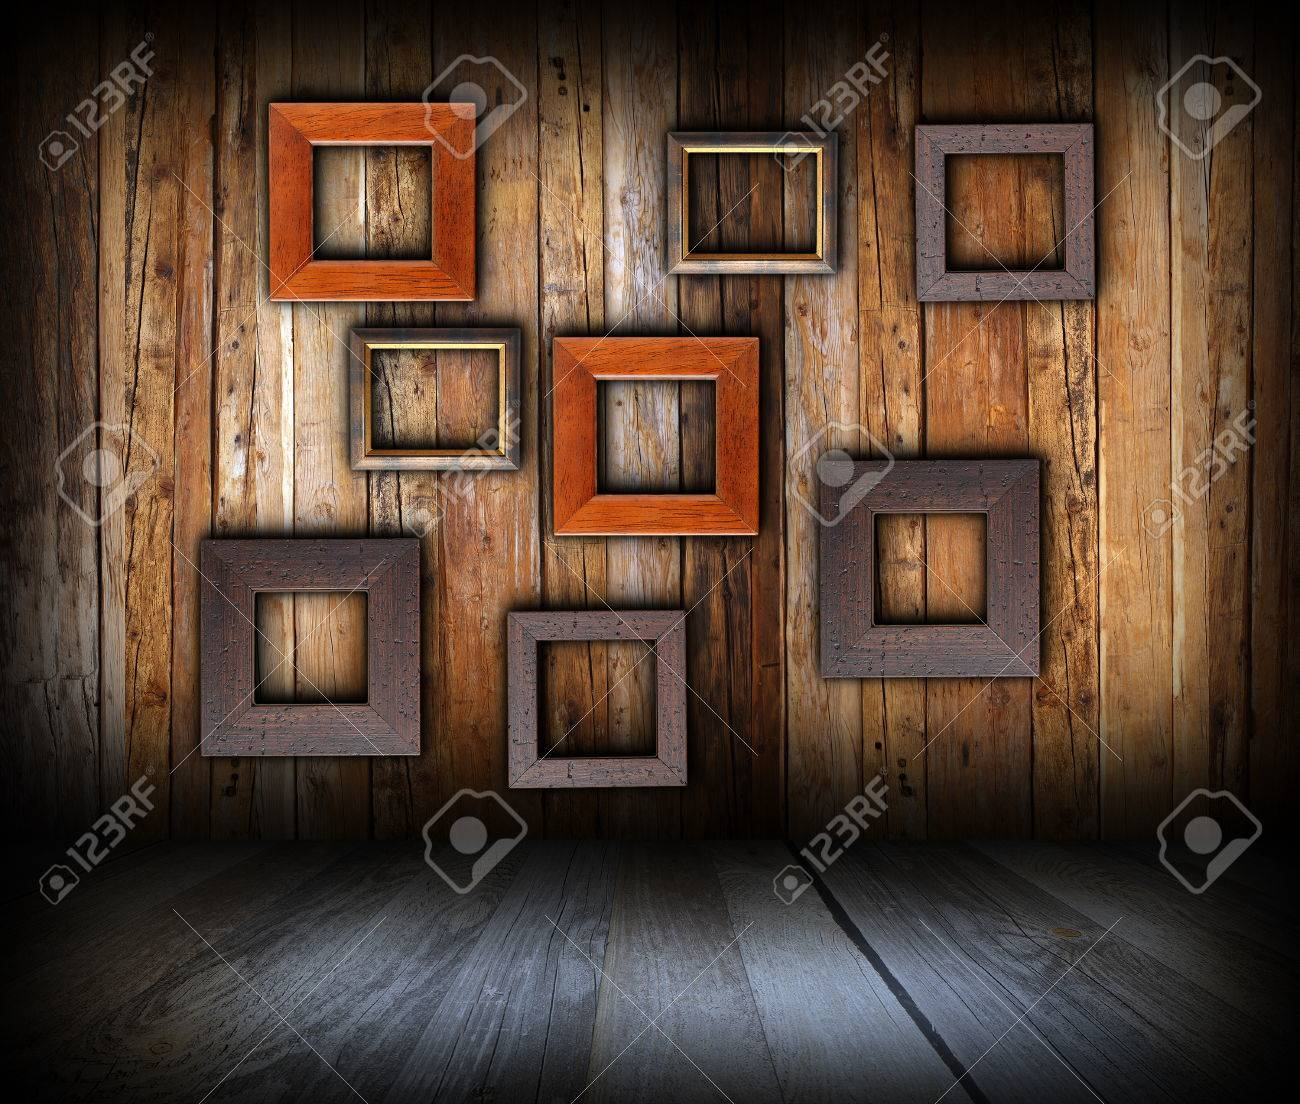 stock photo wooden interior background with empty frames on wall for your message or advertising